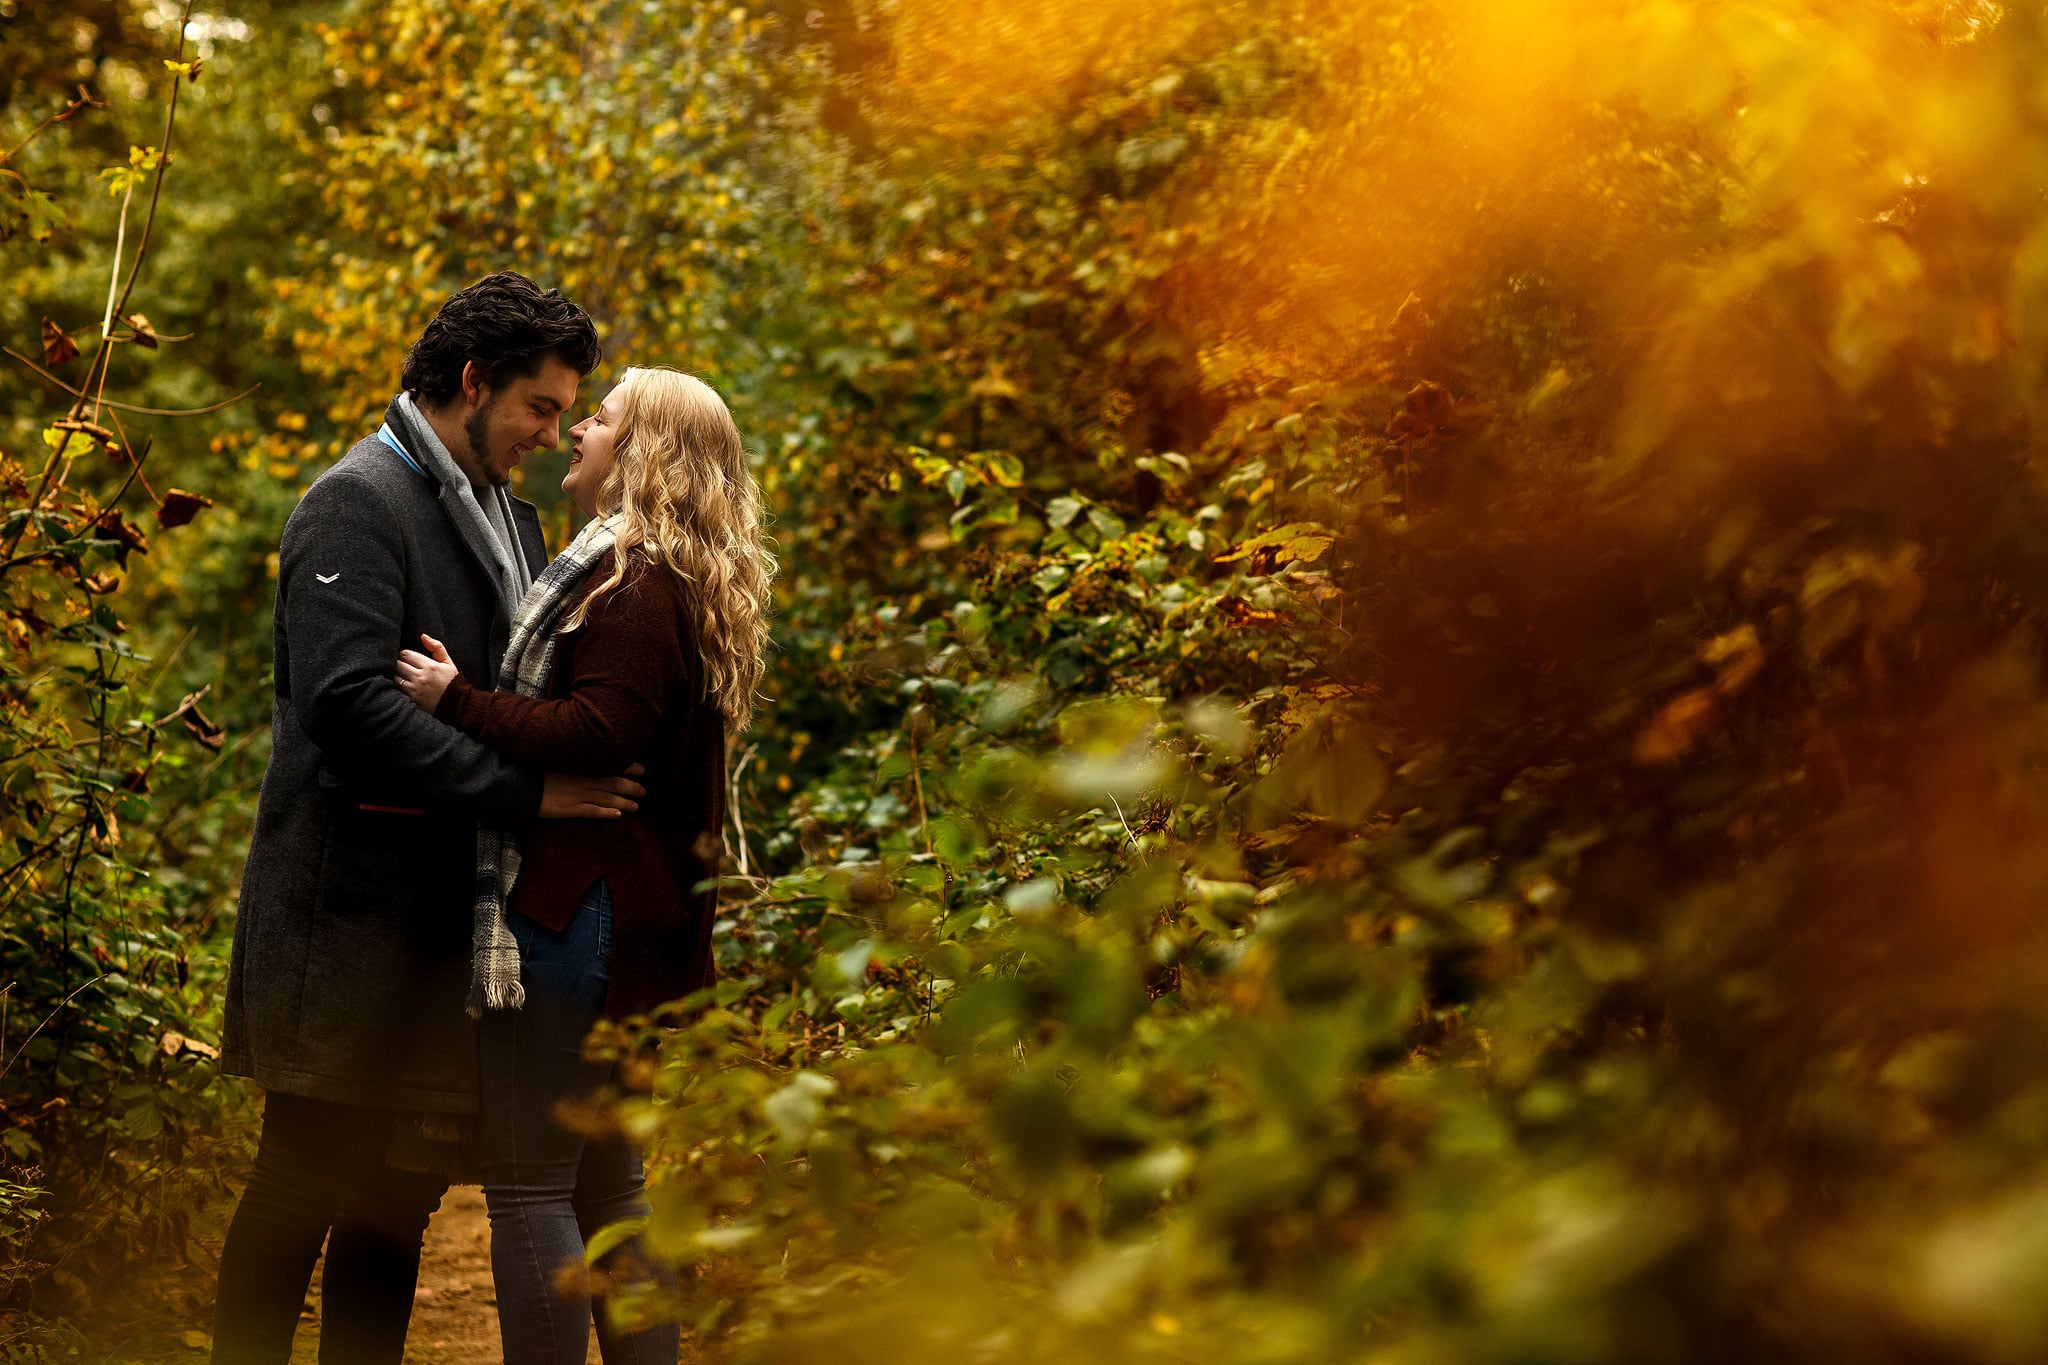 Autumn engagement shoot in the woods with golden leaves.